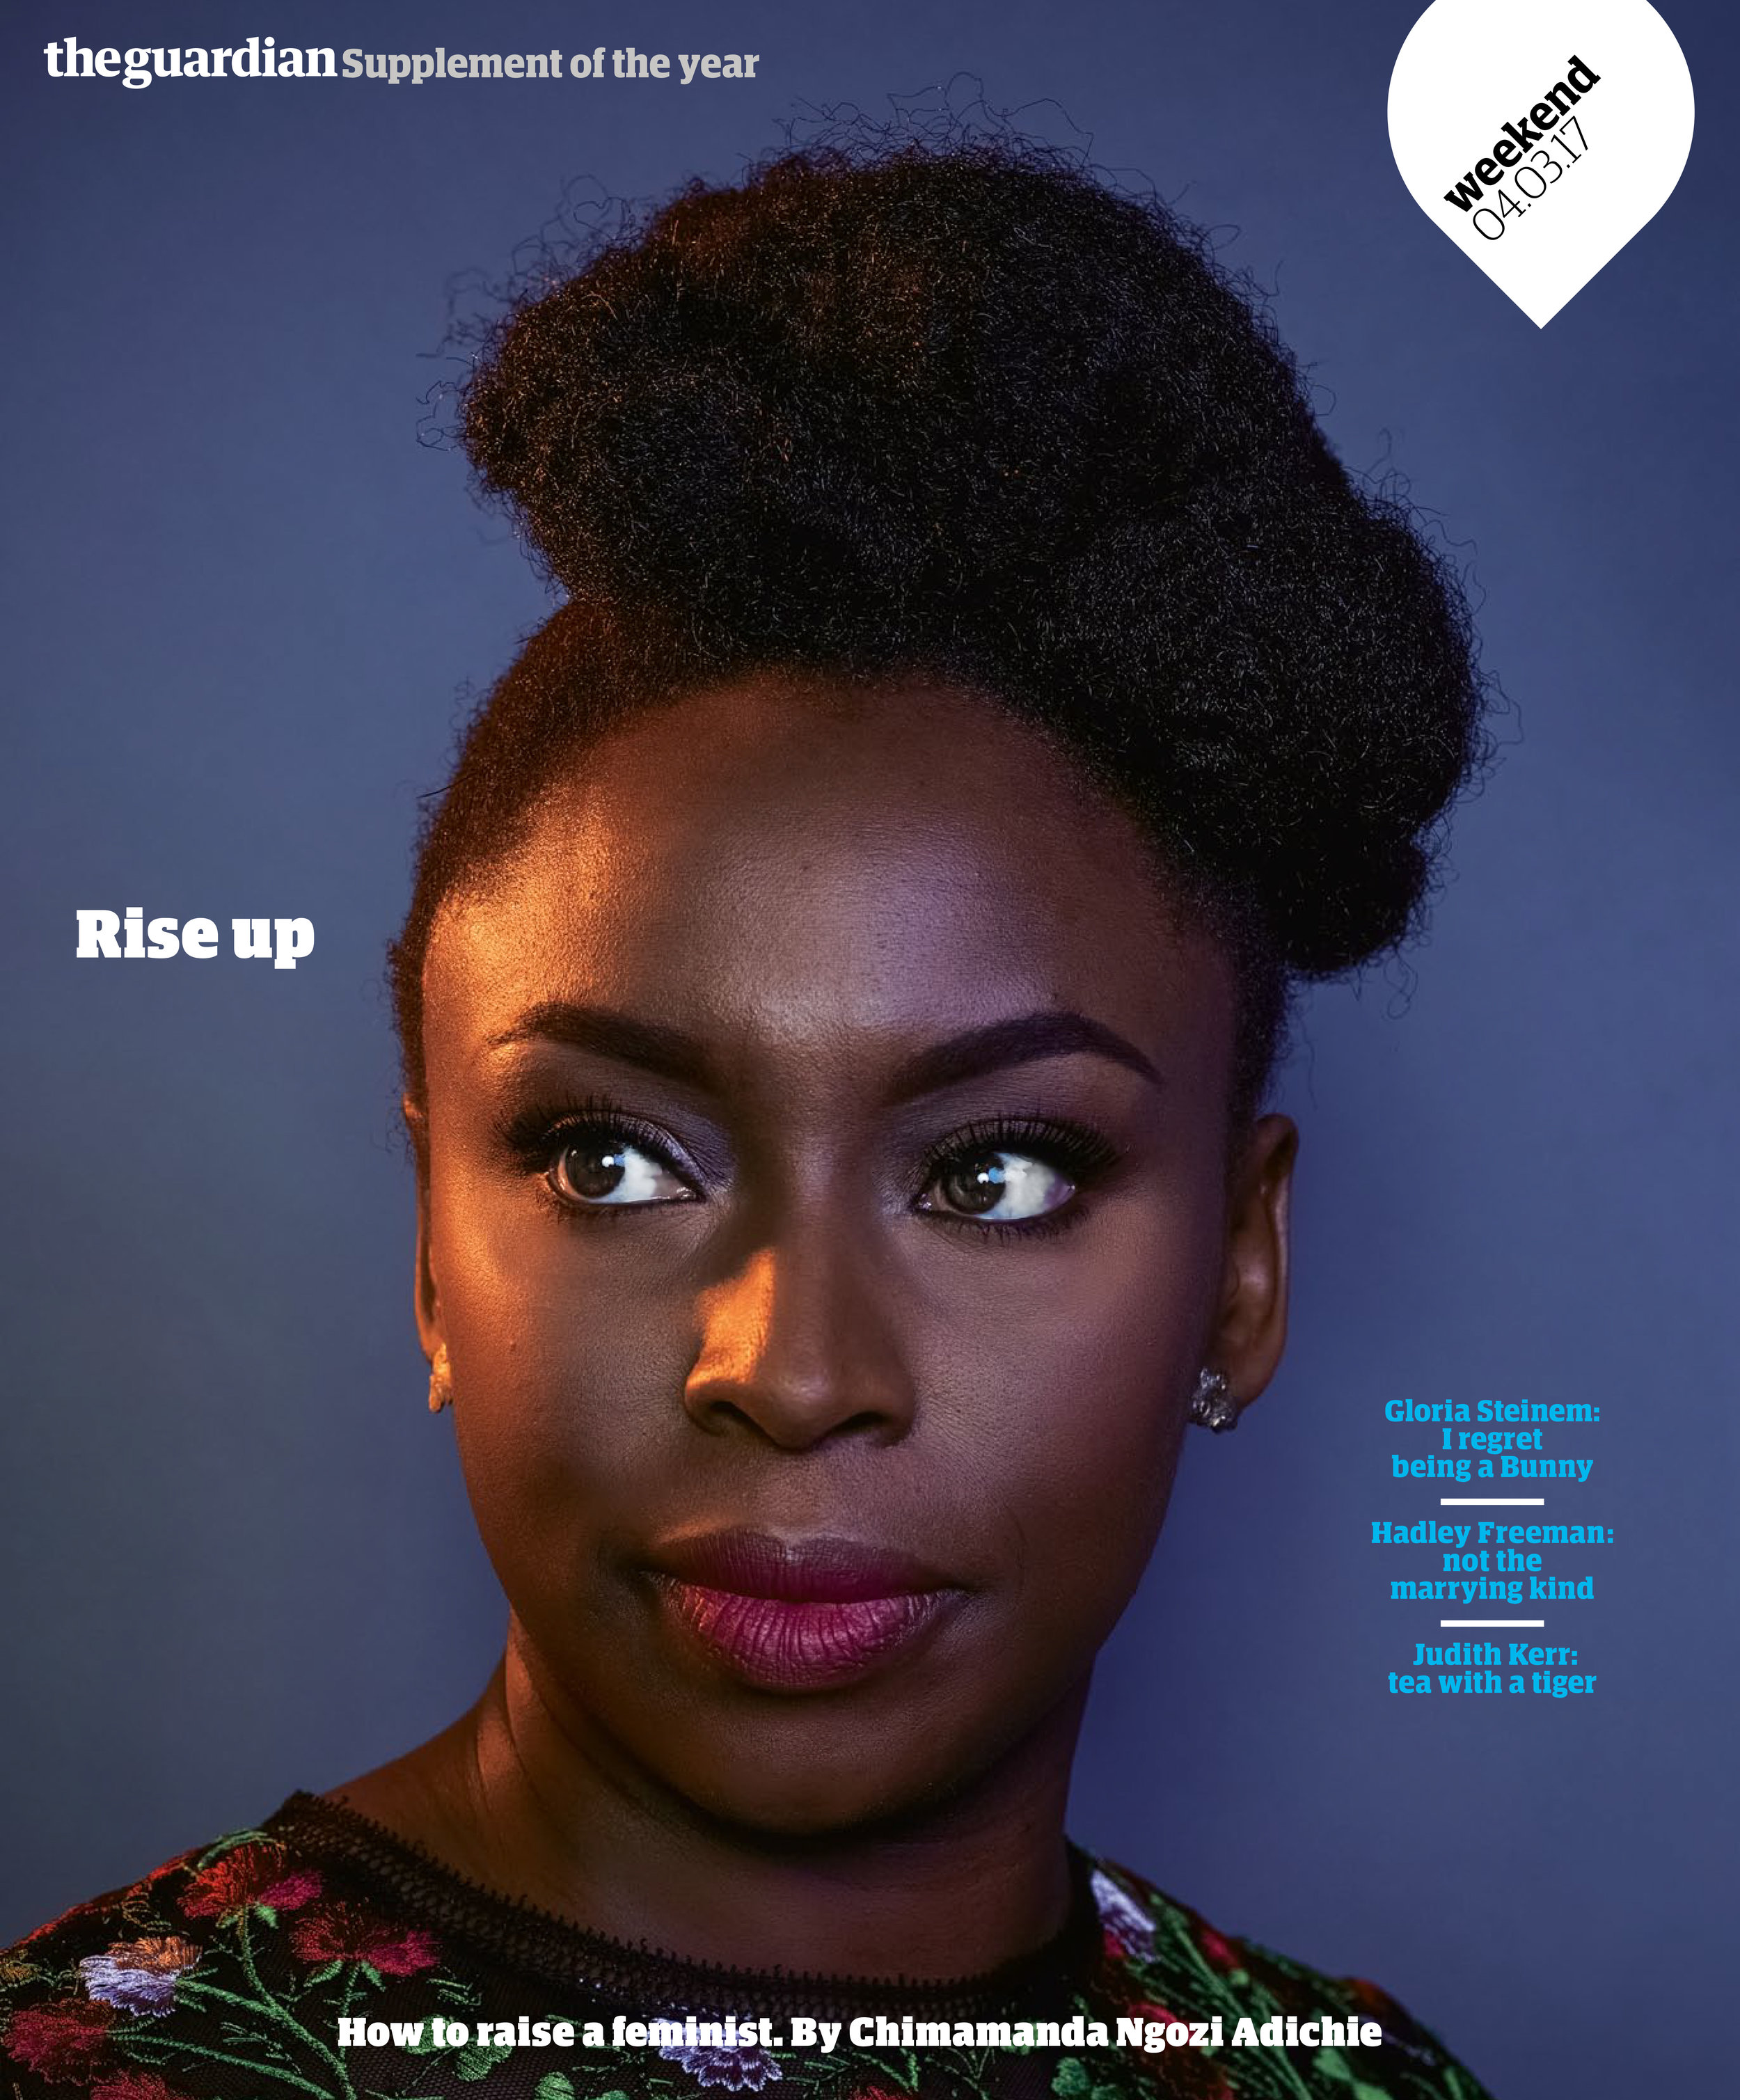 Just a quick note to share a shoot that just came out today for the Guardian Weekend Magazine. I had the pleasure of photographing one of my favorite authors, Chimamanda Ngozi Adichie for the Guardian Weekend Magazine. See the  inside spread here .